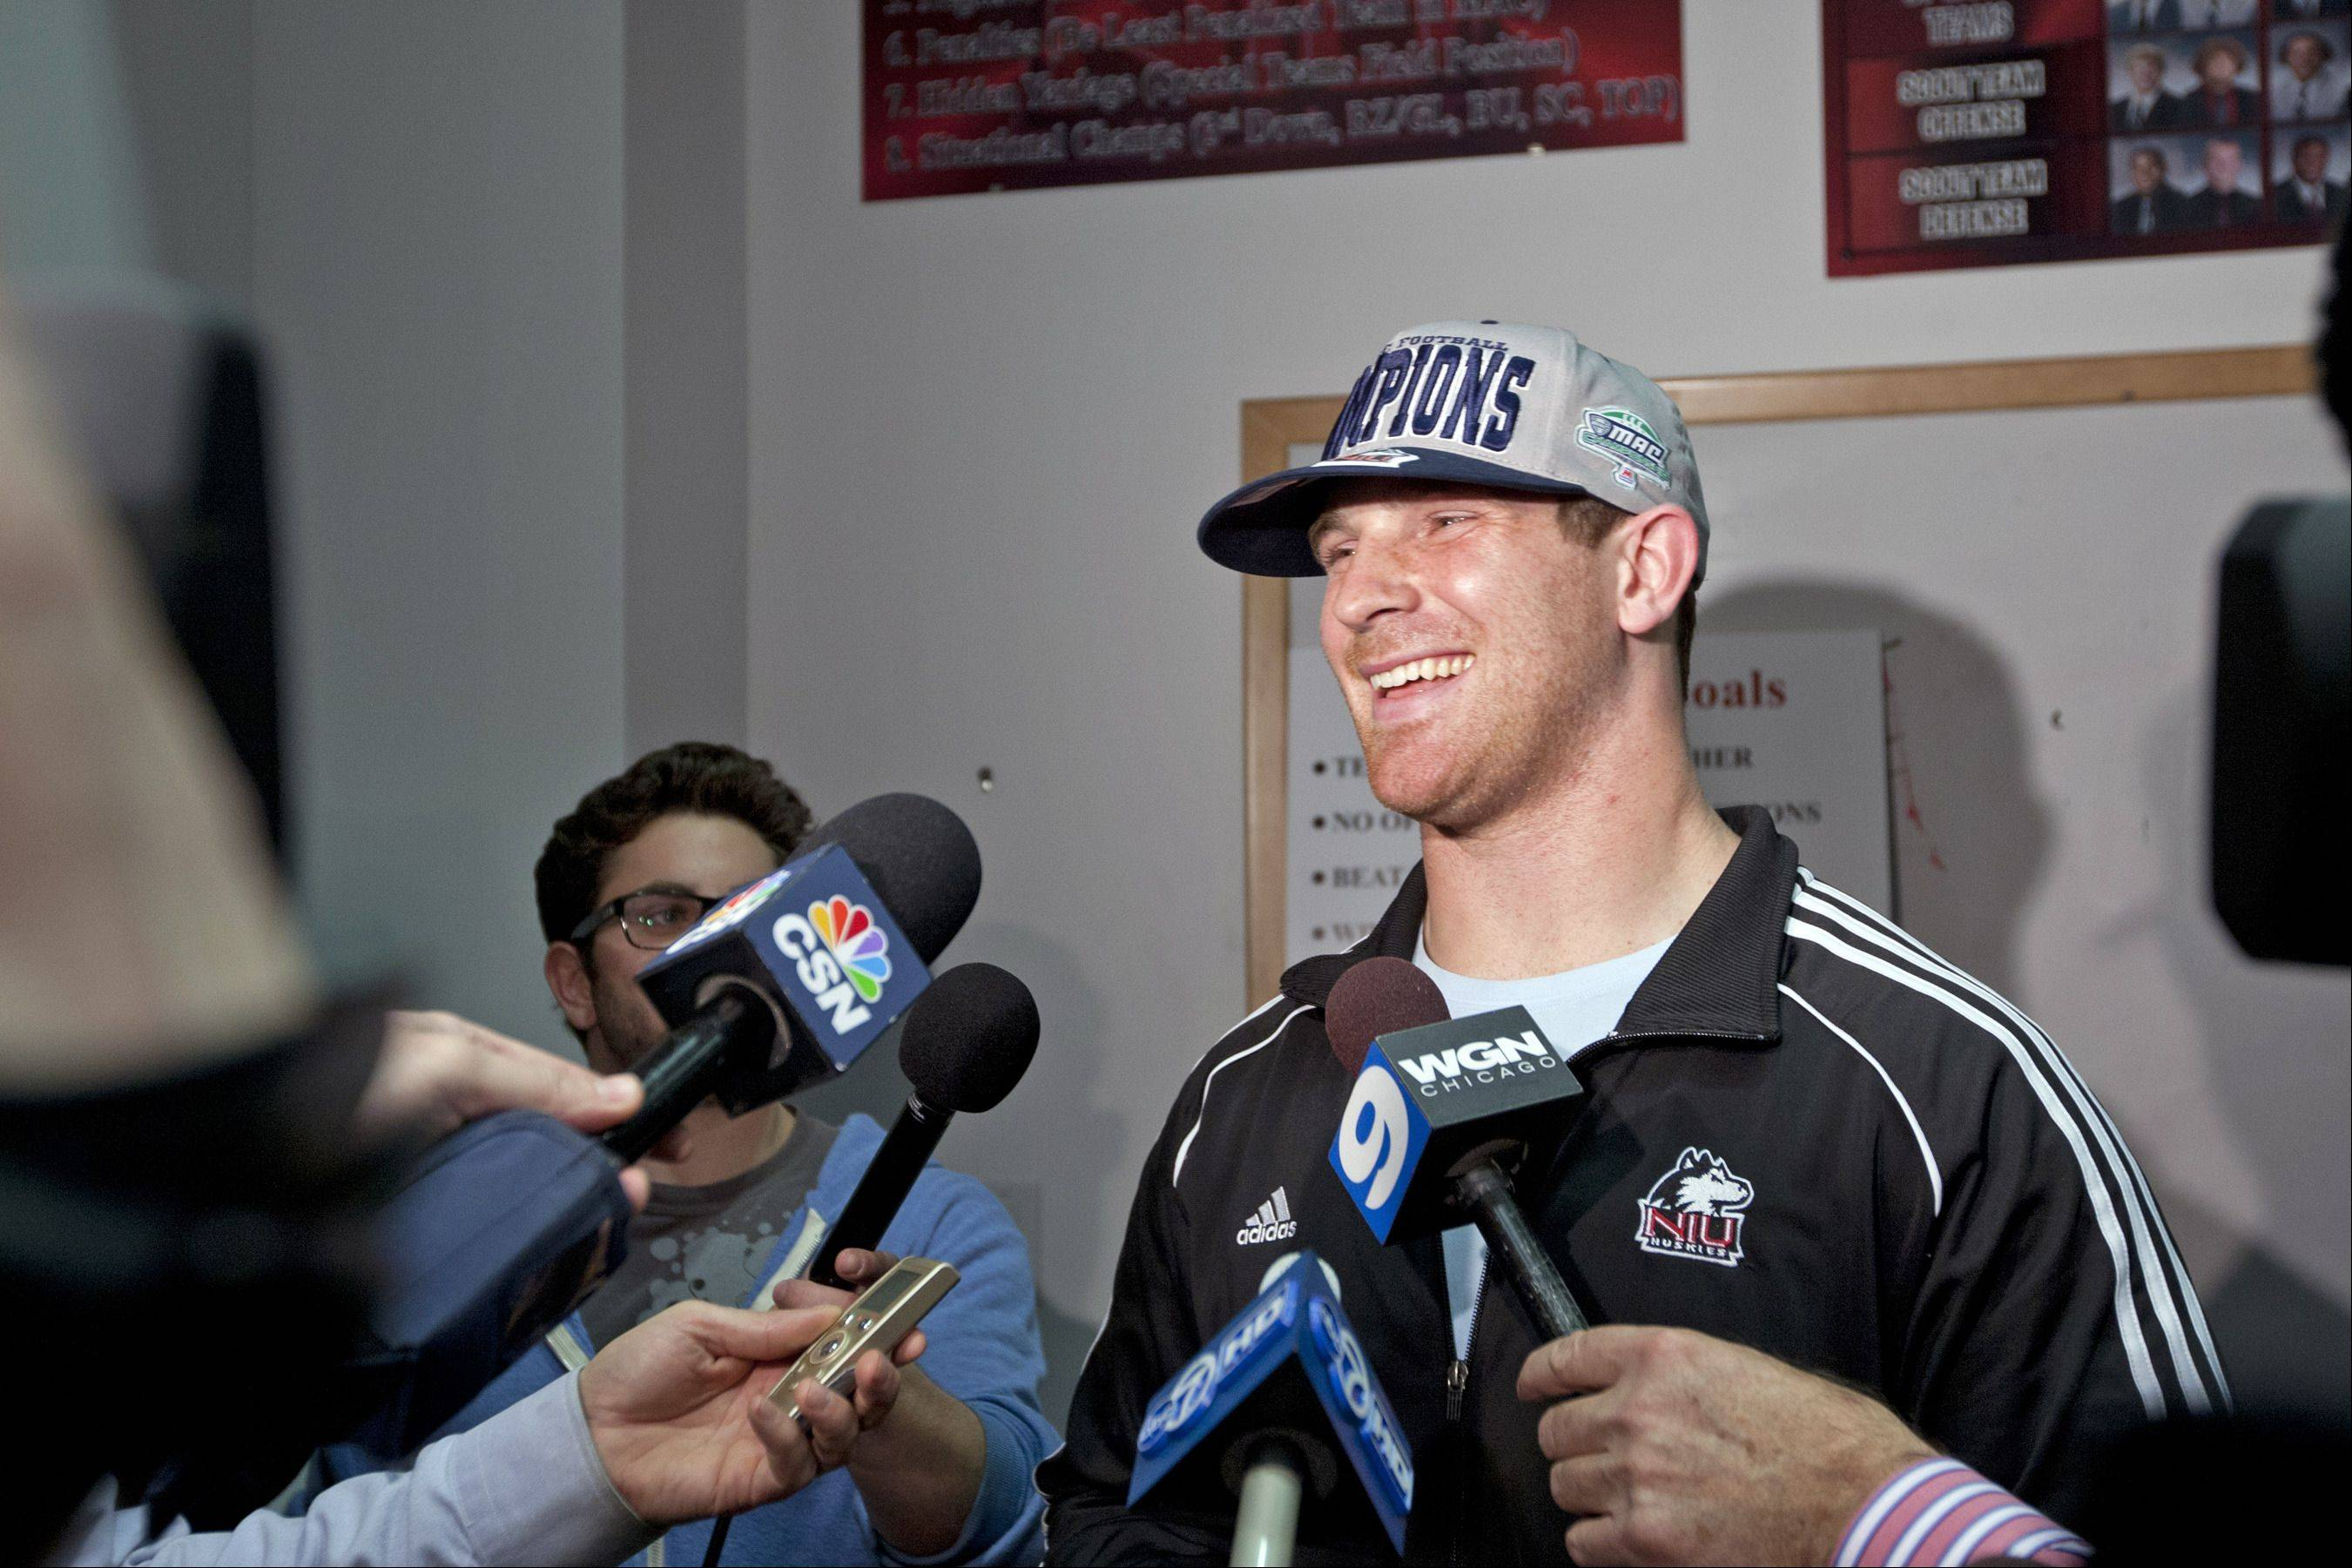 Jordan Lynch reacts on Sunday night during a press conference in DeKalb as the NIU Huskies learned of their Orange Bowl berth.